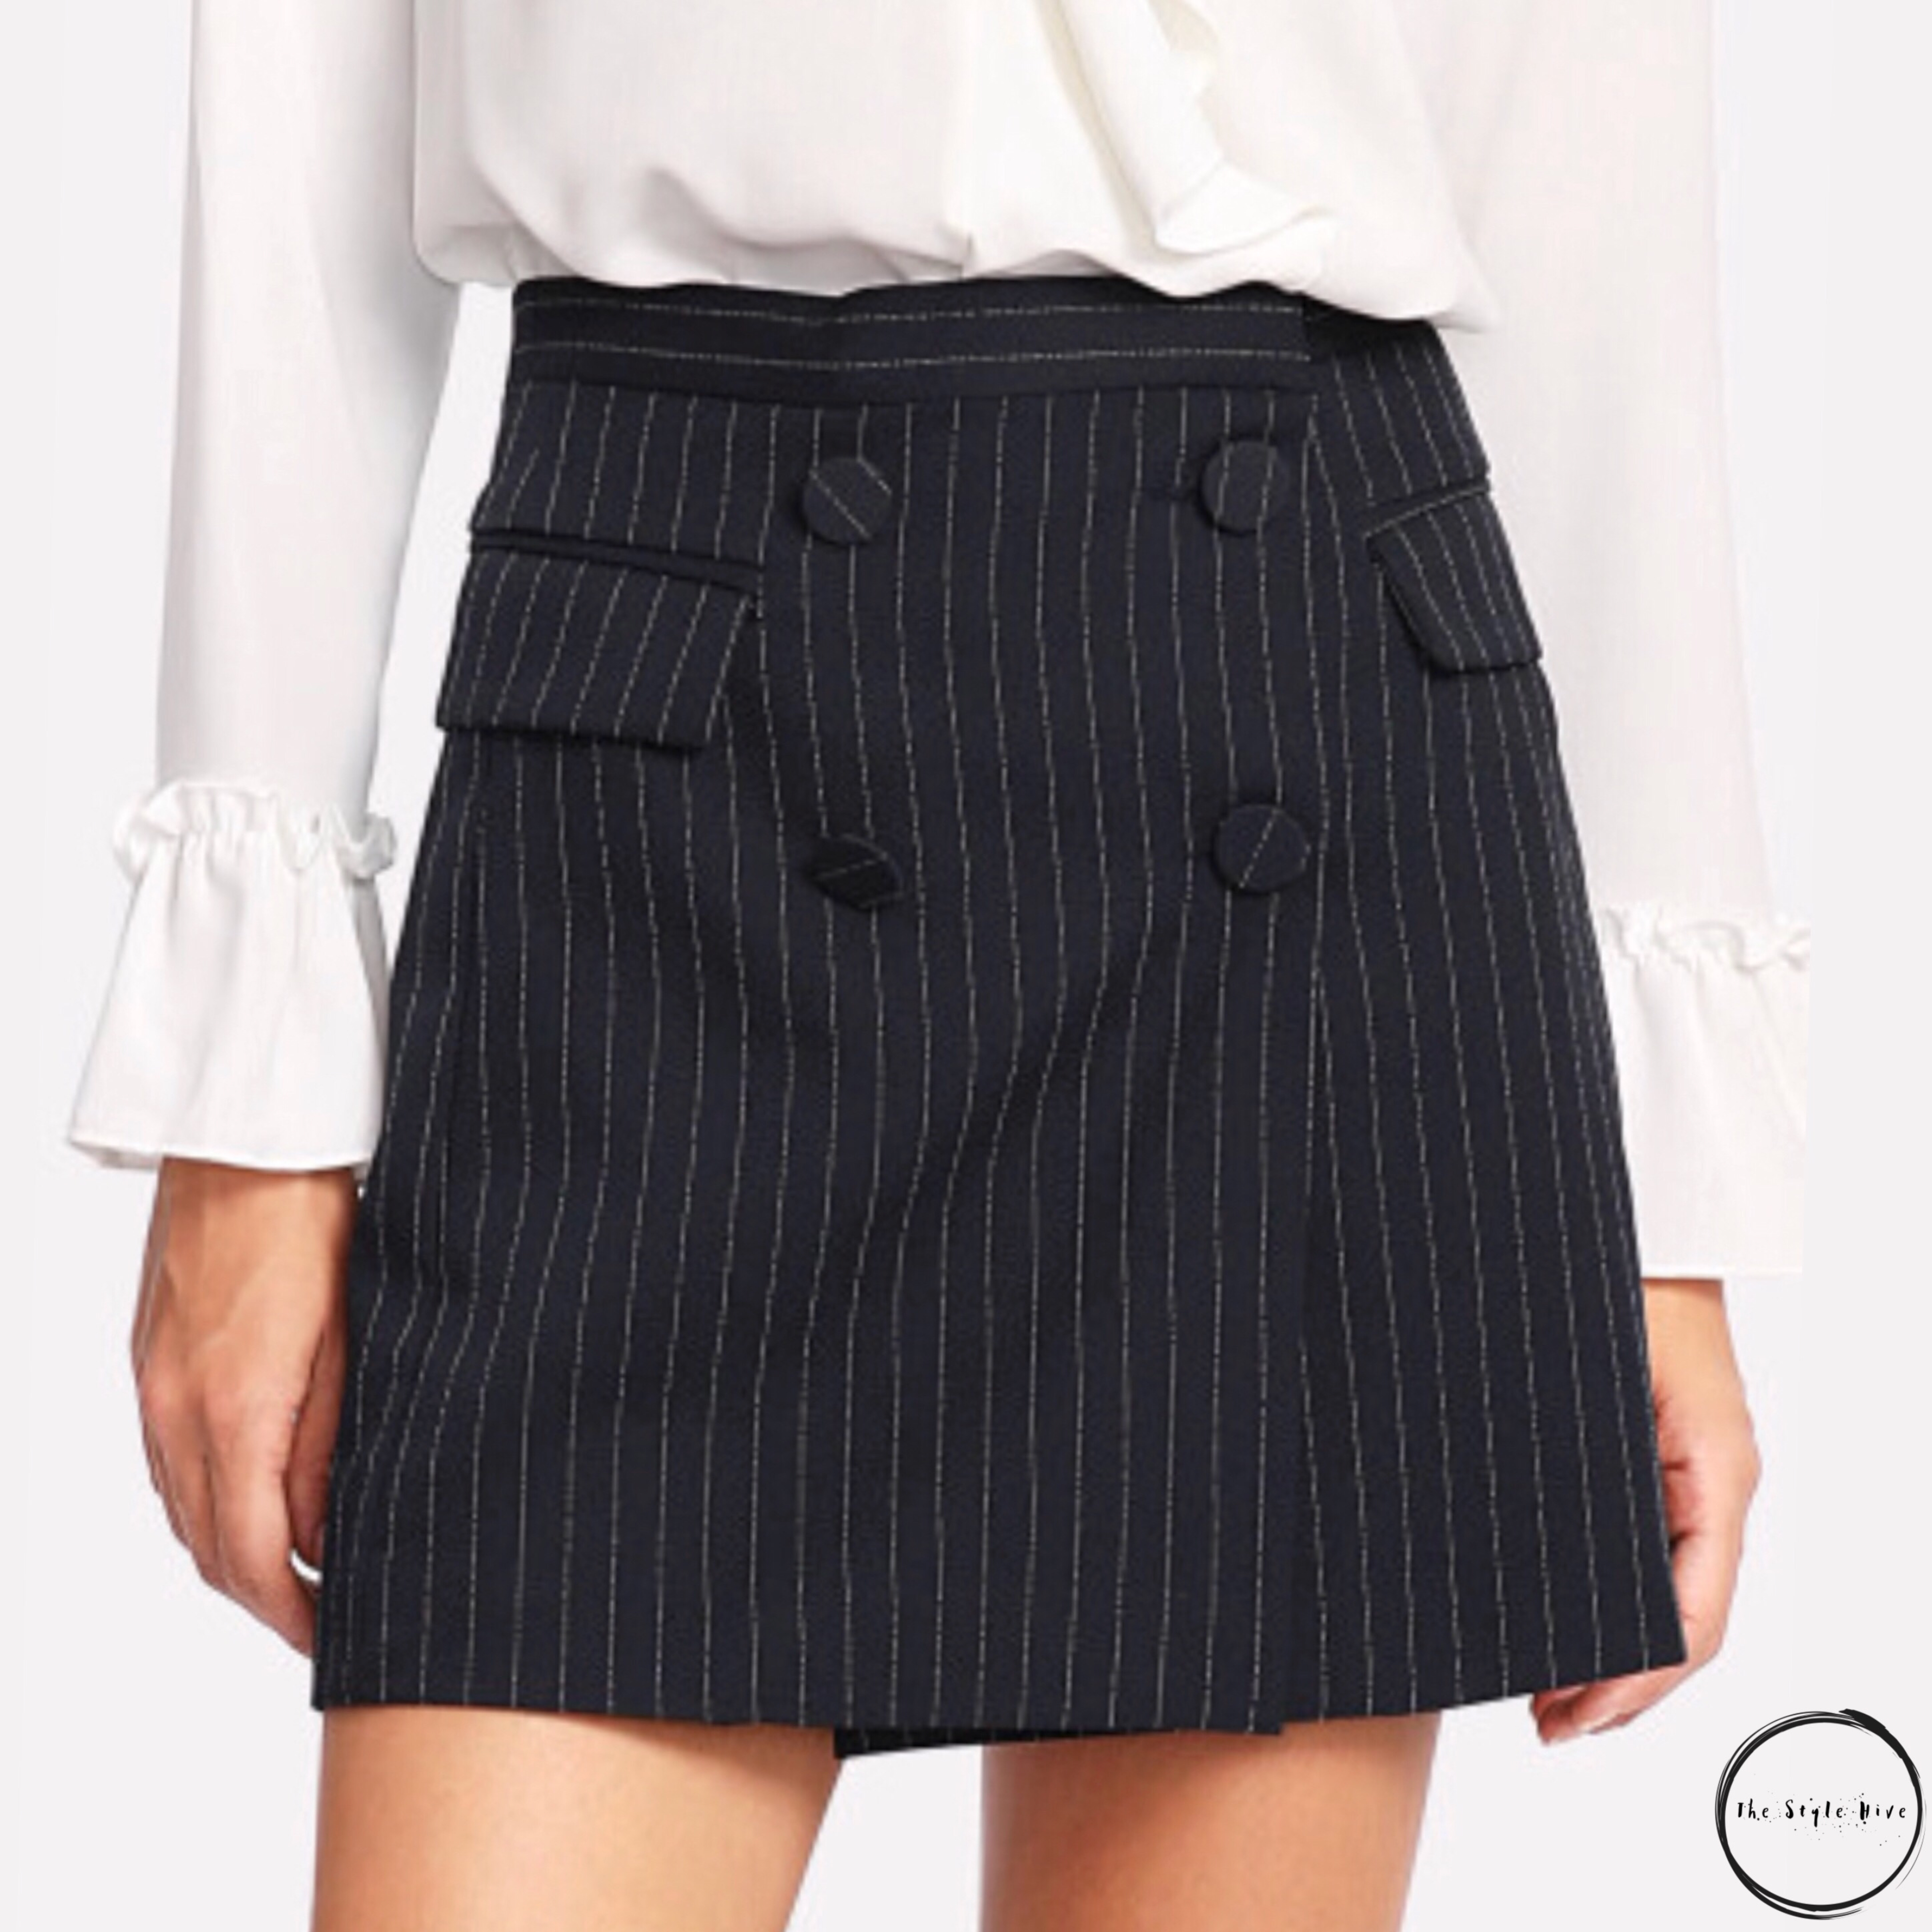 DOUBLE BREASTED STRIPED SKIRT Price: ₹1640/- Size: S to L Material: Cotton Blend  To order Whatsapp on +918425053368 💌 #onlineshop #thestylehive #shoponline #ordernow